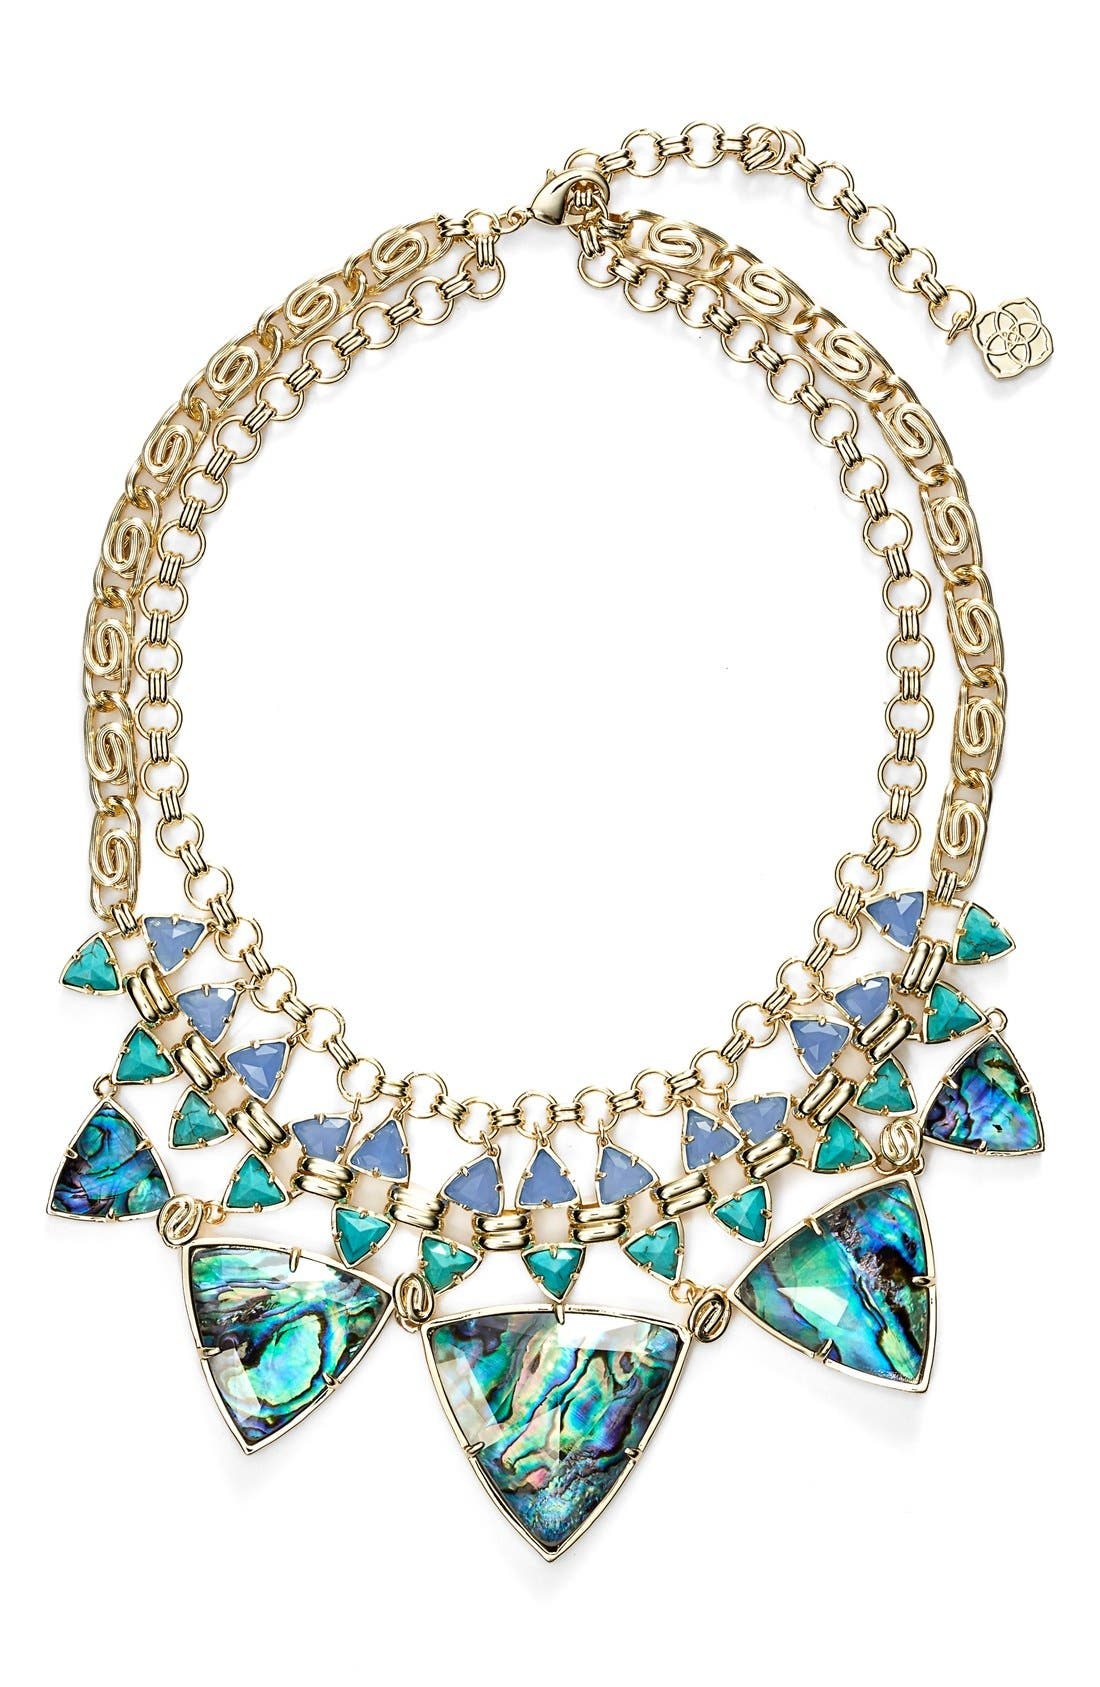 Alternate Image 1 Selected - Kendra Scott 'Emily' Stone Statement Necklace